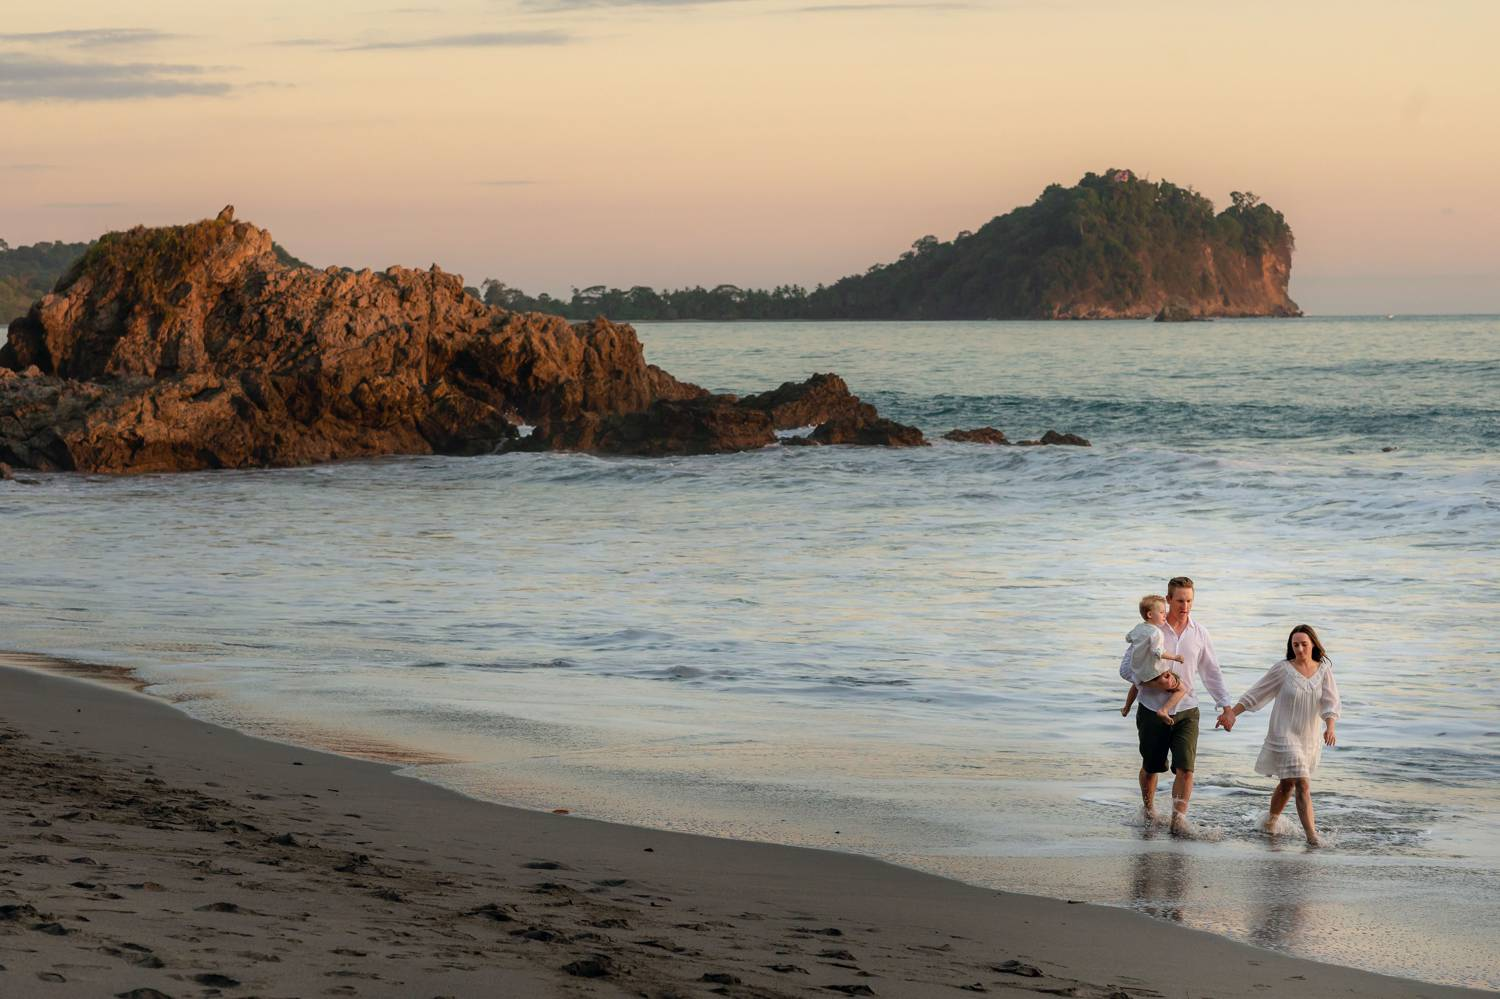 Client Experience: A photo by Kevin Heslin depicts a couple standing in the surf of a beach at sunset while holding their young child.